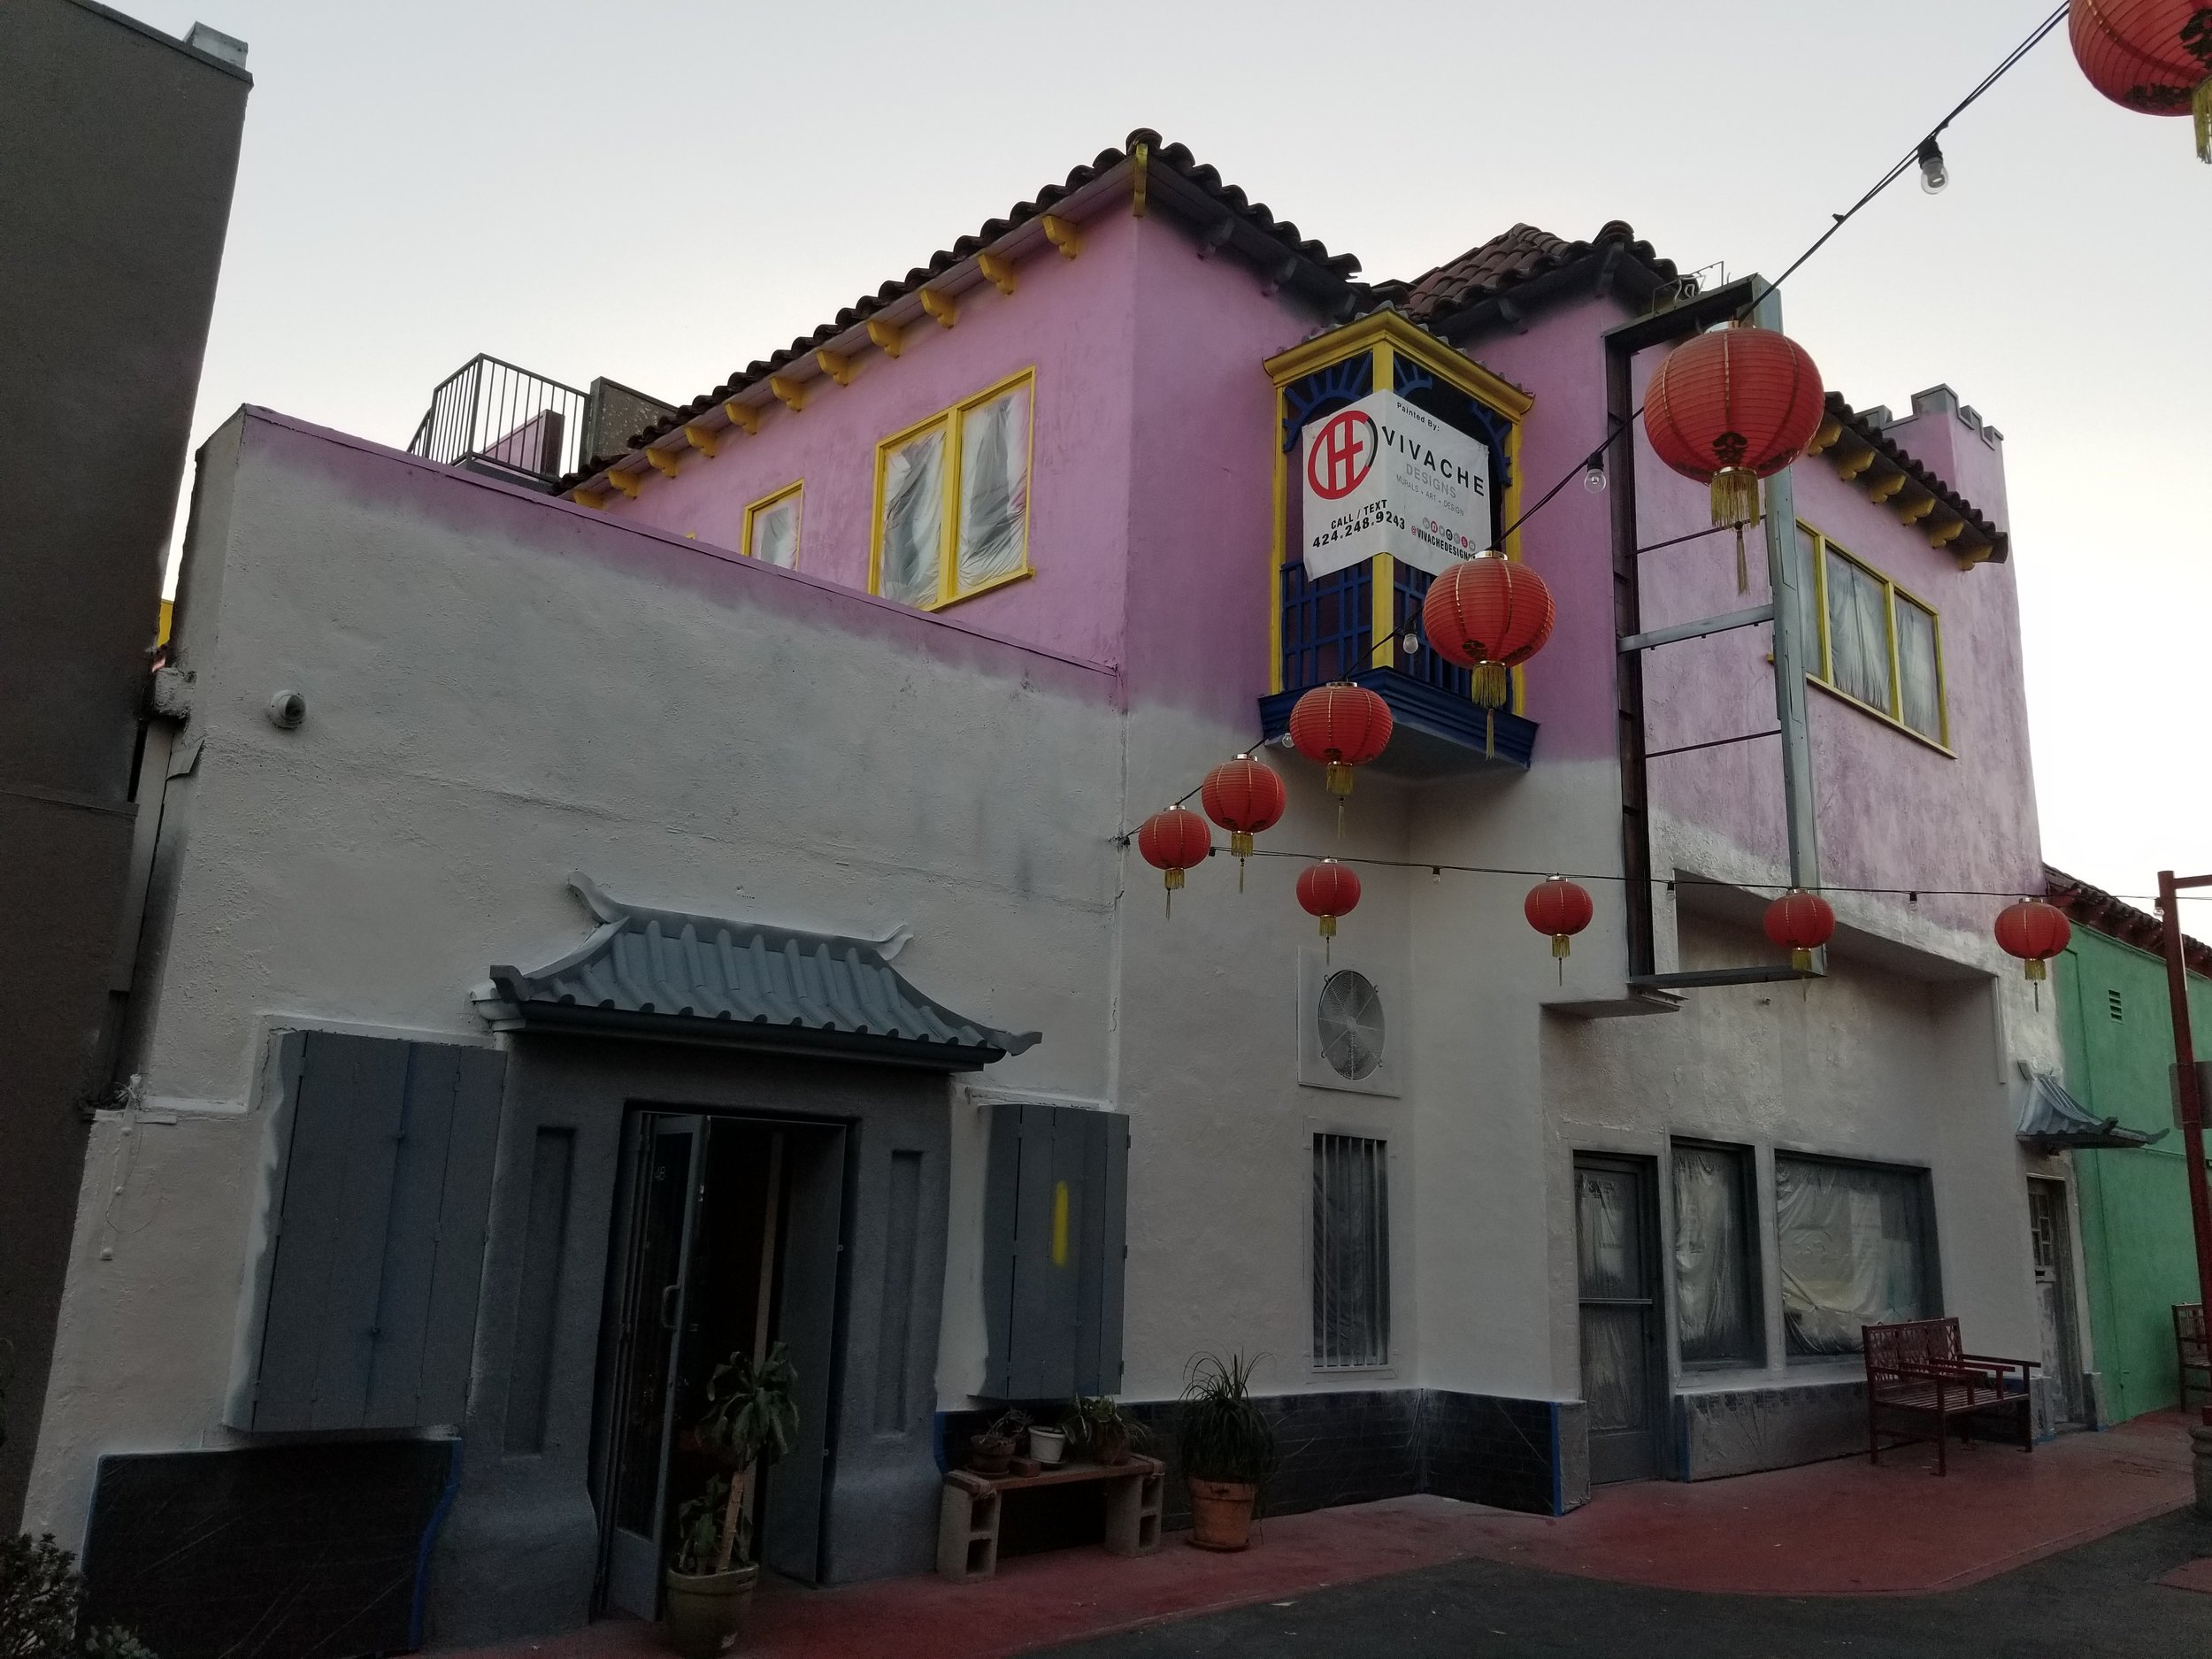 Vivache Designs Chinatown Mural Painter Los Angeles